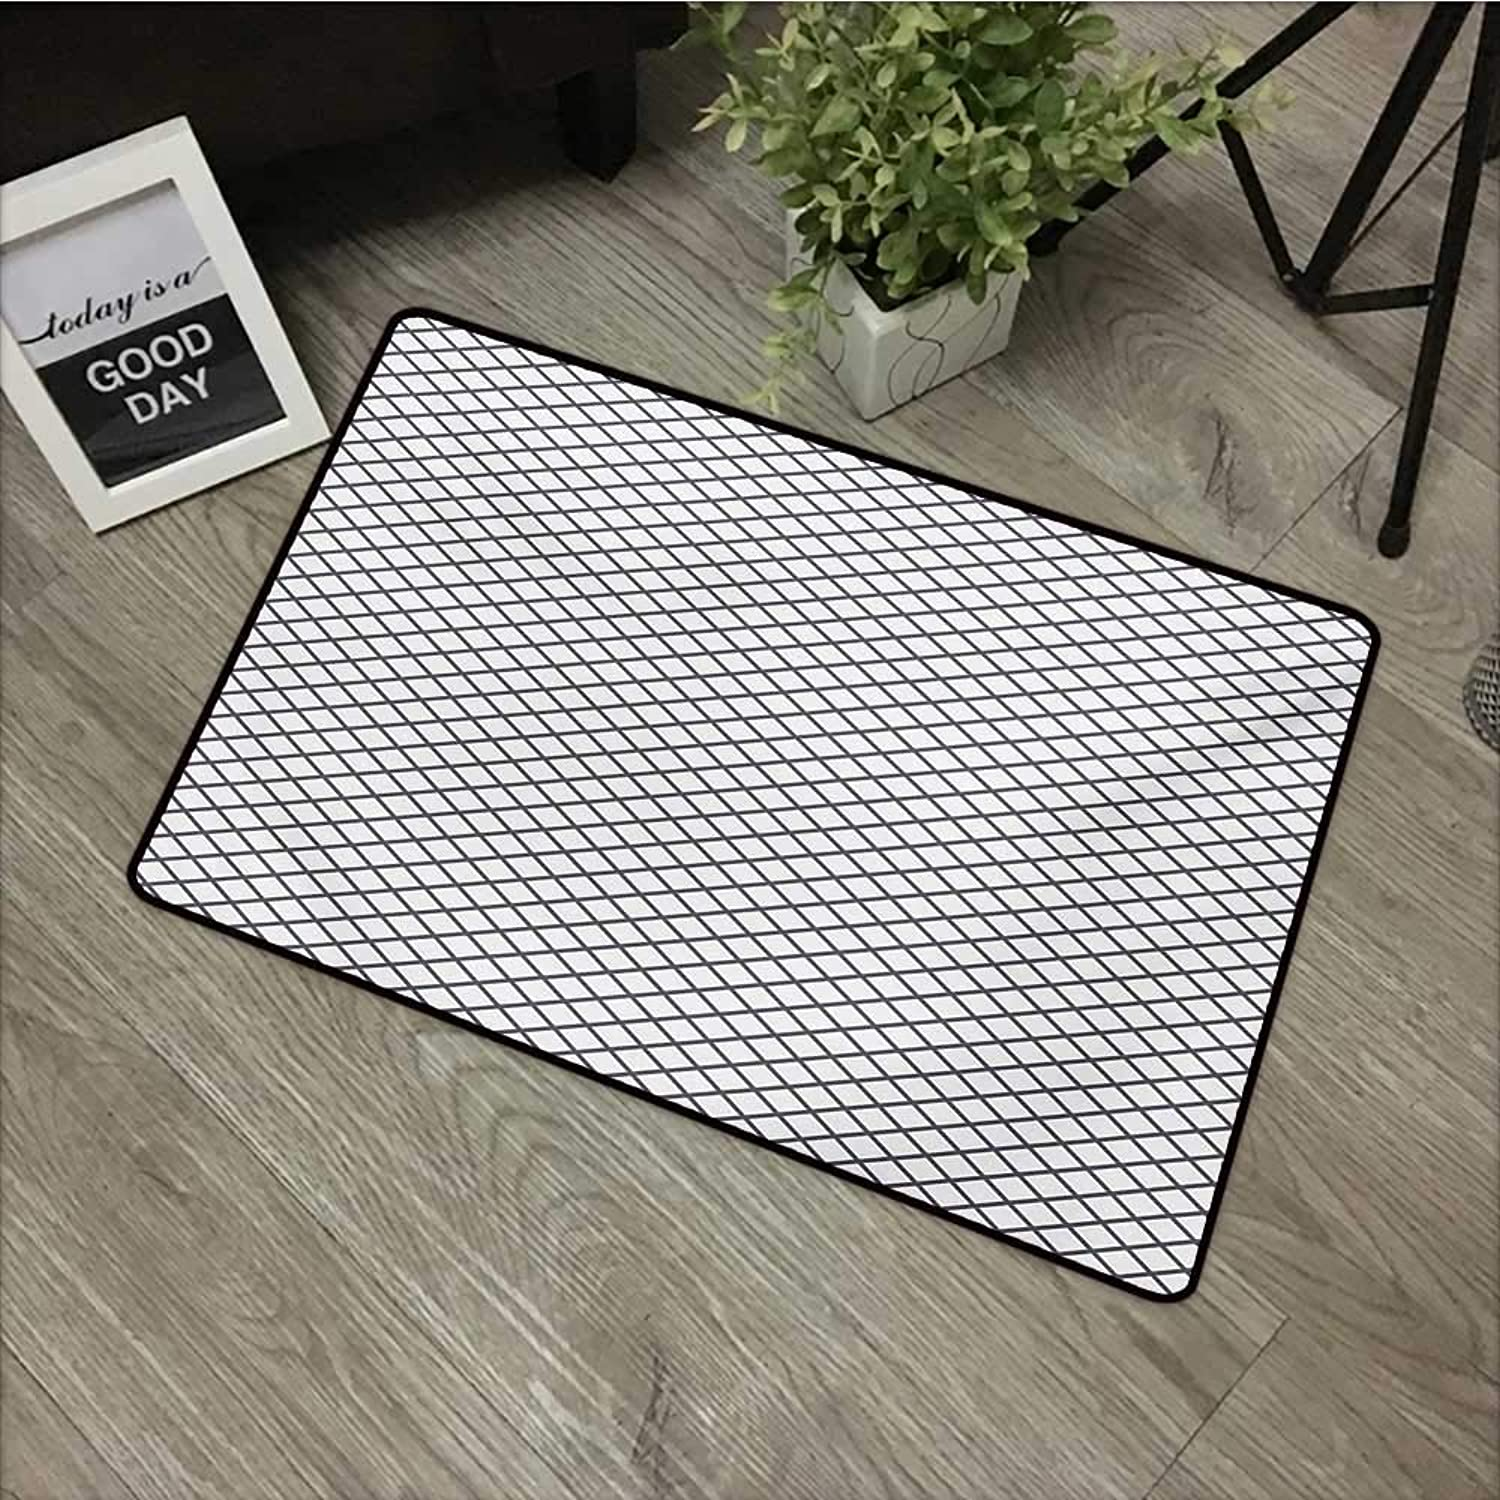 Bedroom Door mat W31 x L47 INCH Modern,Geometrical Stripes Crossing Zig Zag Basket Braid Like Image,Charcoal Grey Black and White Easy to Clean, no Deformation, no Fading Non-Slip Door Mat Carpet